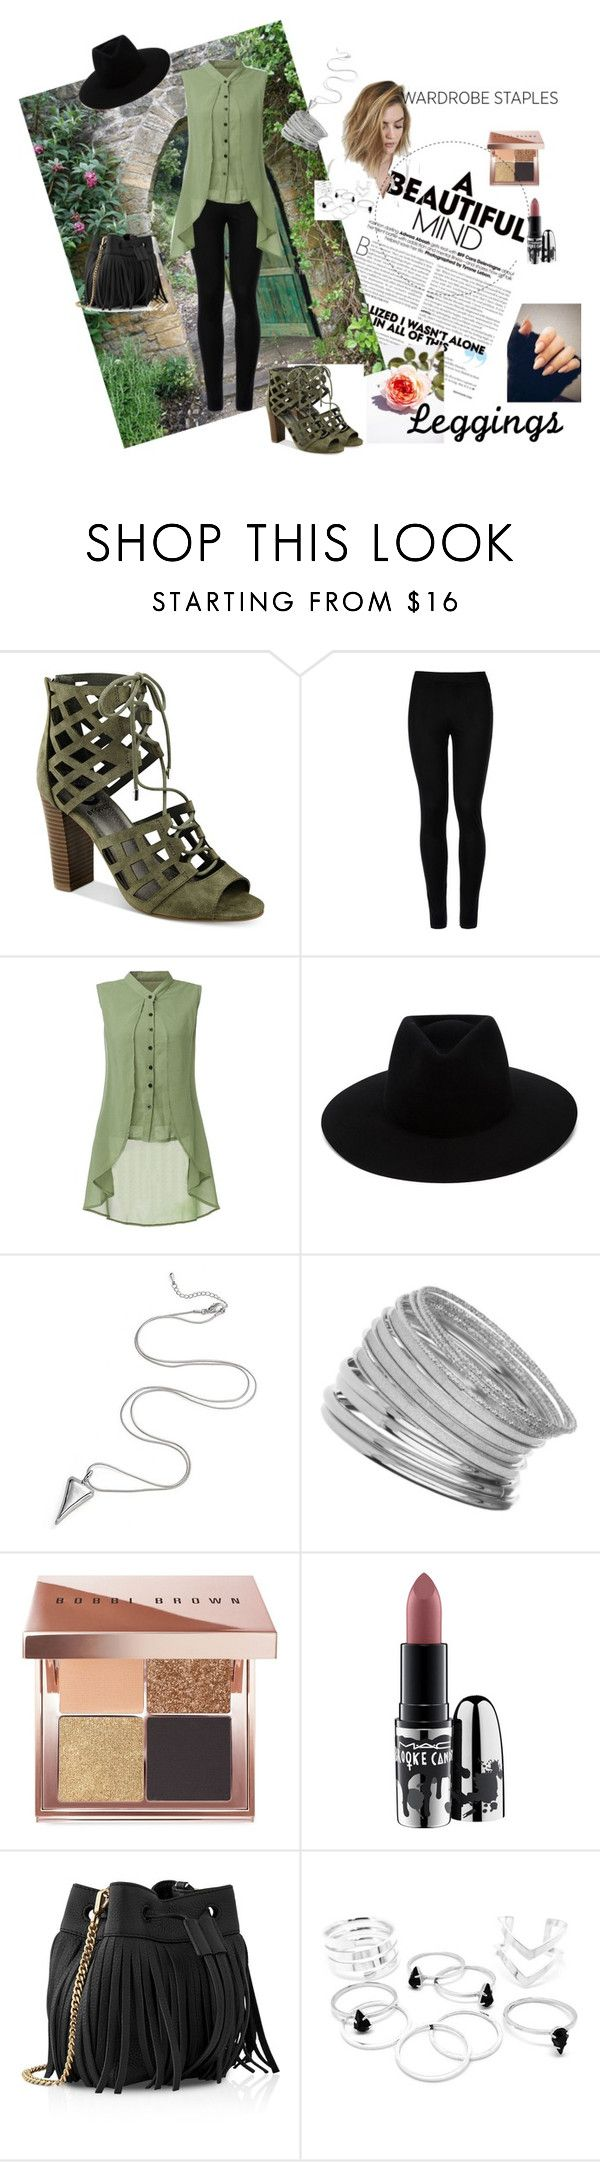 """Laidback leggings"" by jessicashanee1 ❤ liked on Polyvore featuring G by Guess, Wolford, rag & bone, Miss Selfridge, Bobbi Brown Cosmetics, MAC Cosmetics, Whistles, Leggings and WardrobeStaples"